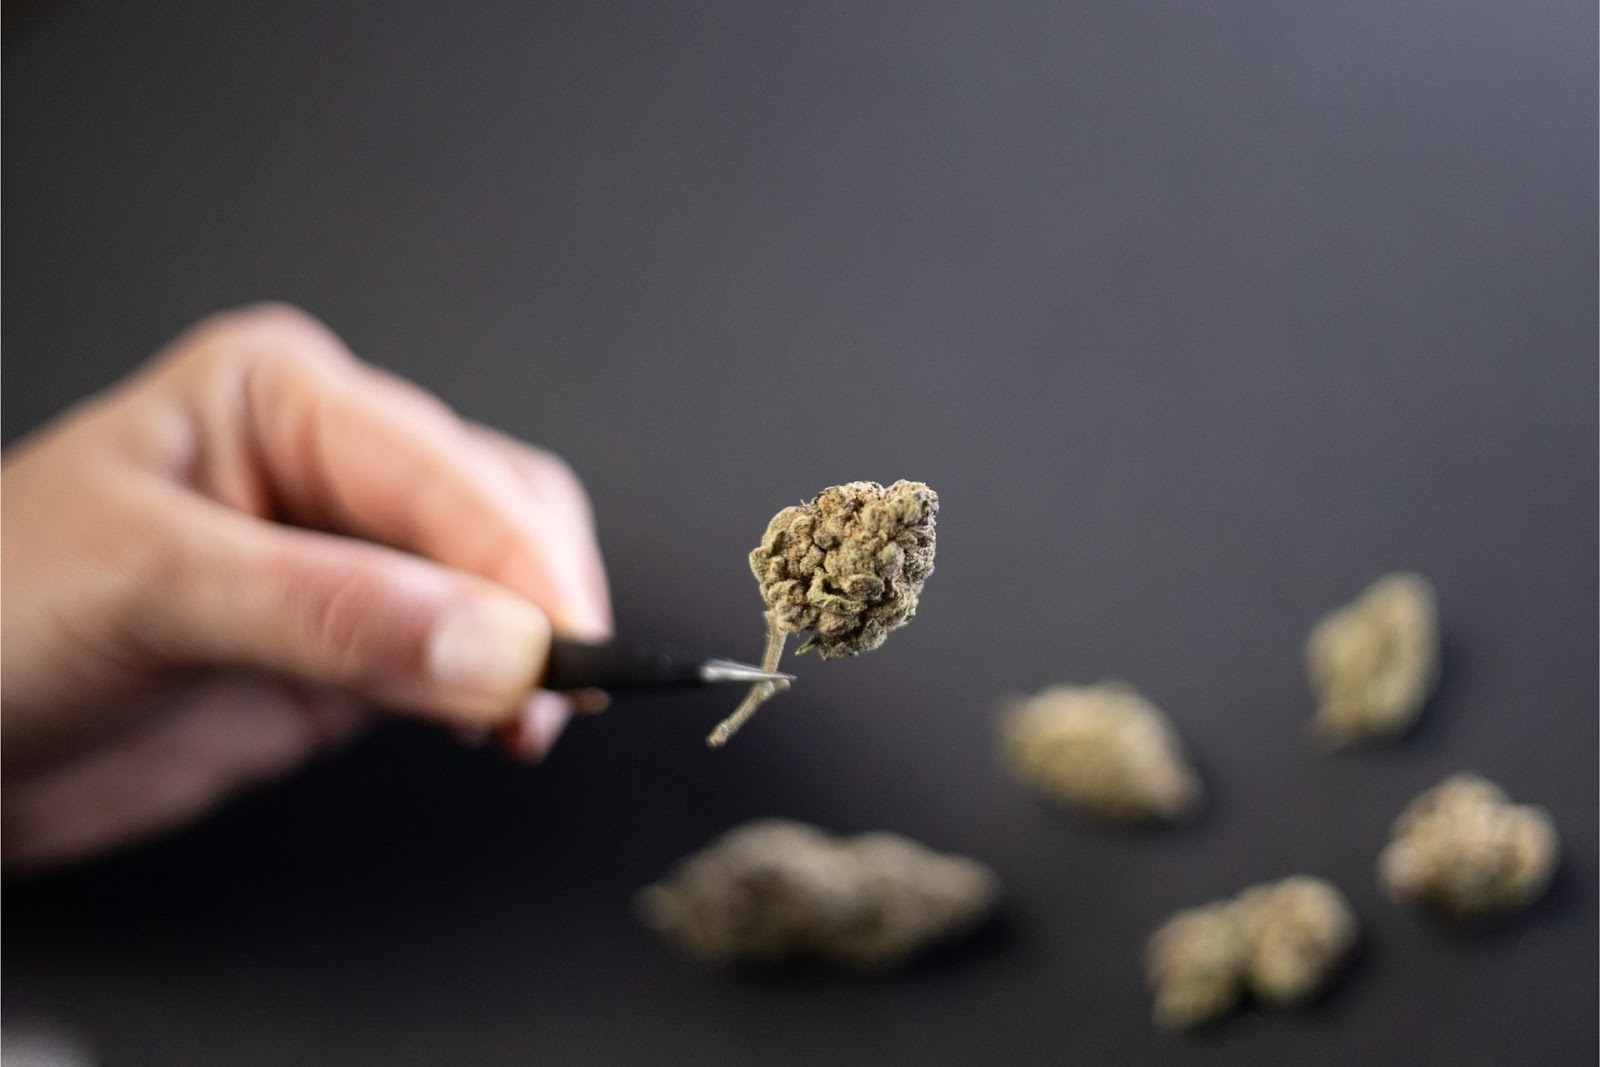 a dried cannabis flower being examined